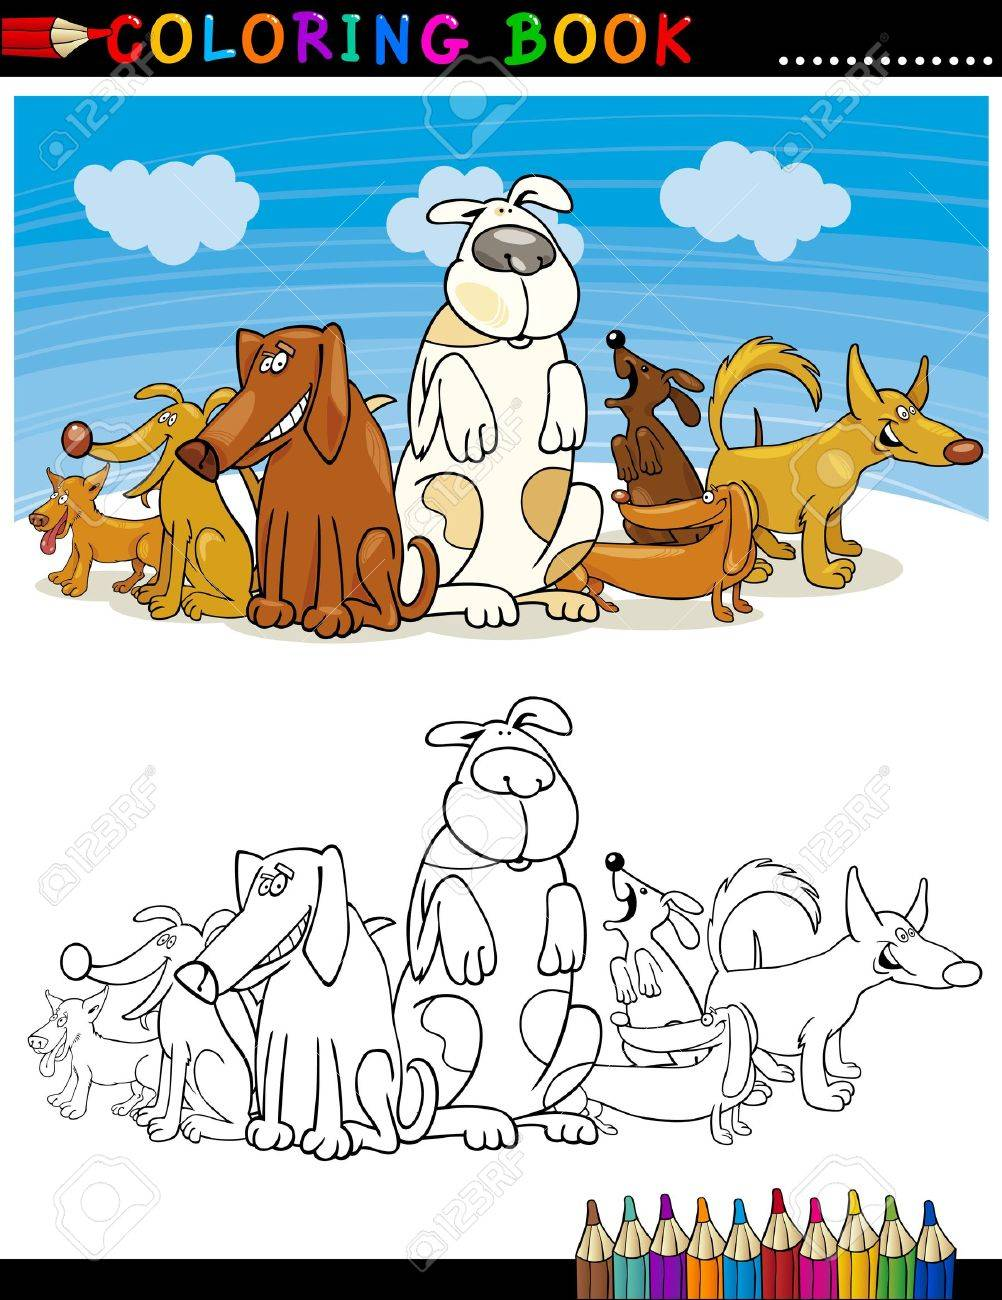 Coloring Book or Page Cartoon Illustration of Funny Dogs Group against Blue Sky for Children Stock Vector - 15406227